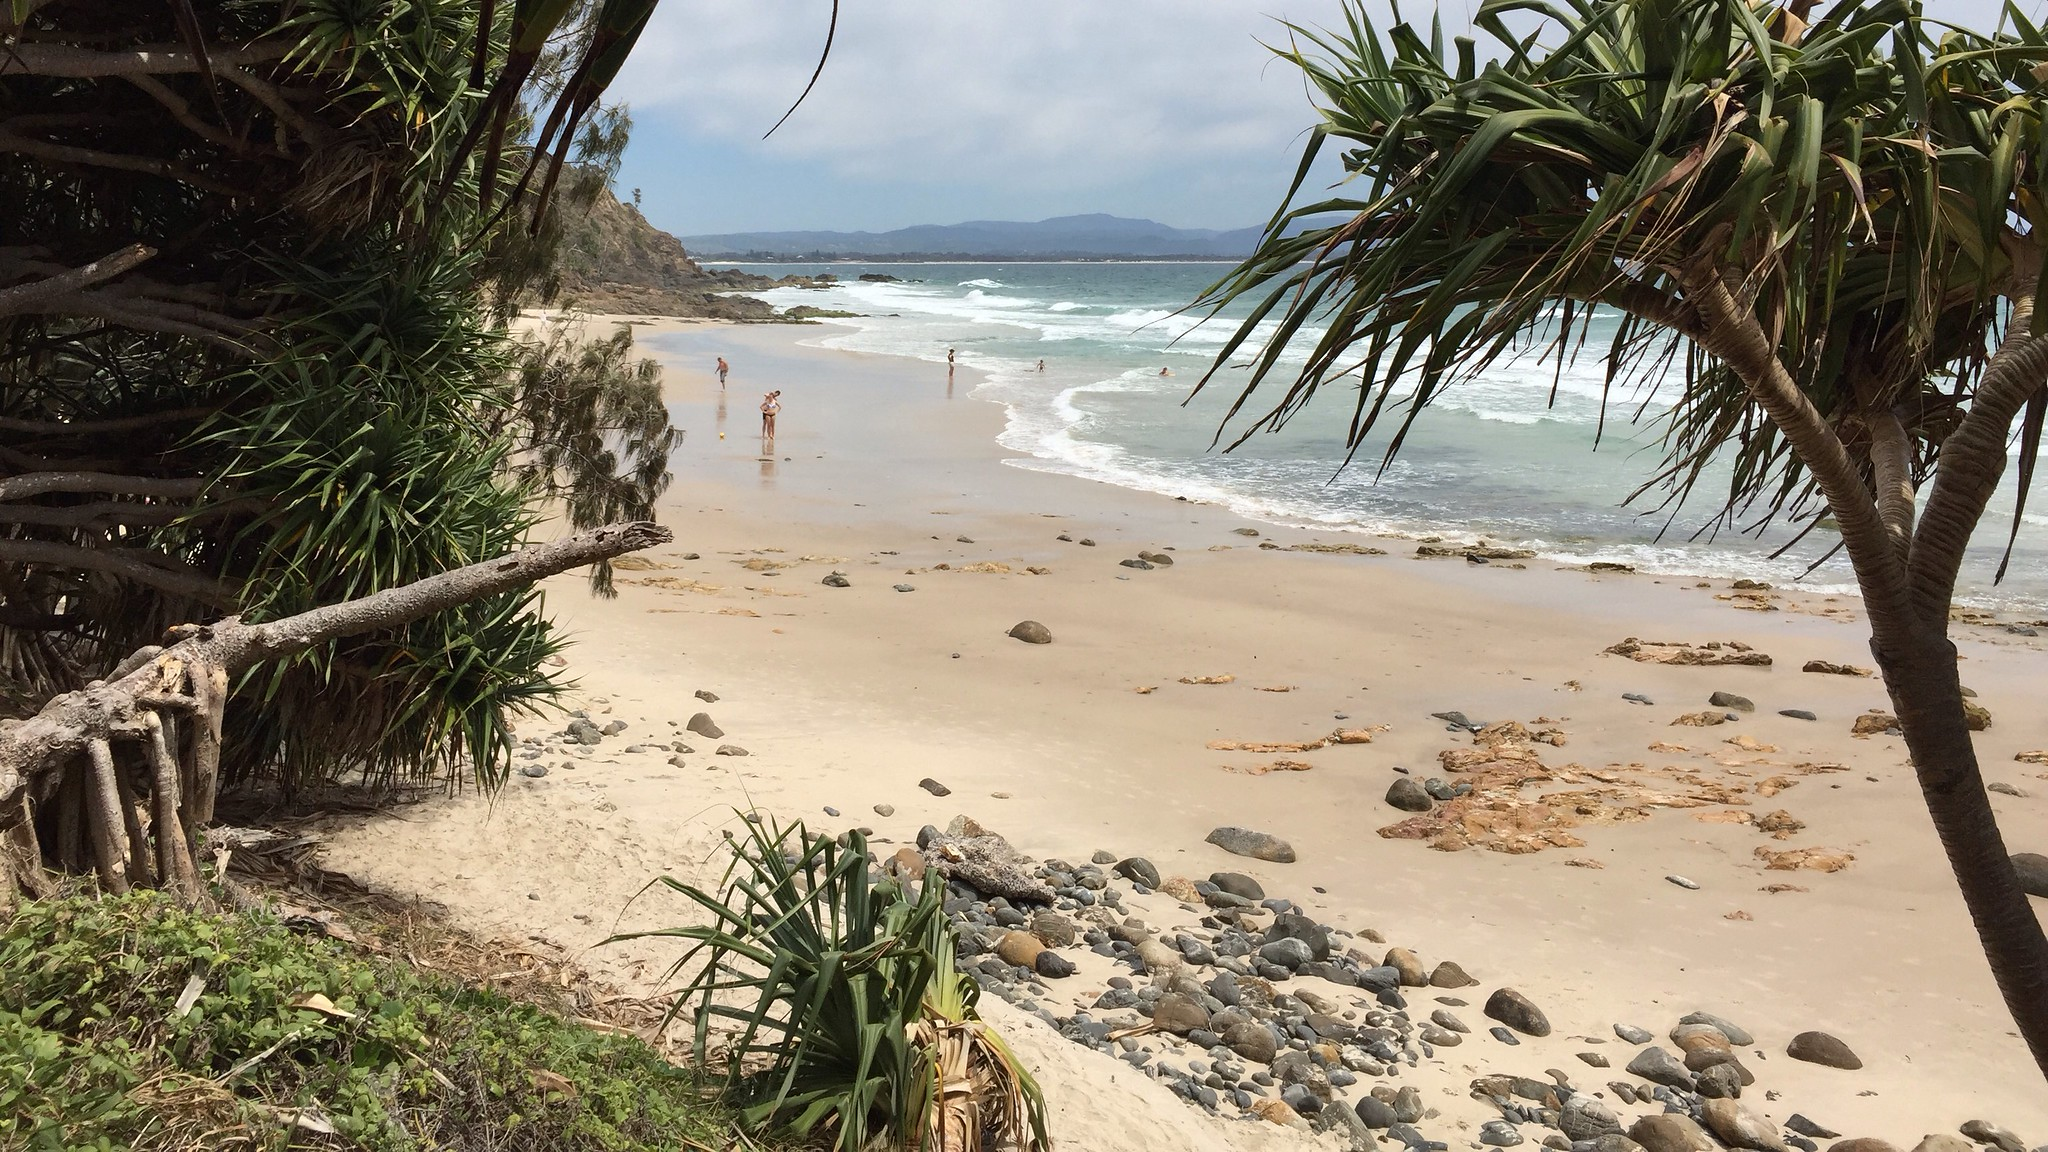 7 Best Things To Do in Byron Bay, Australia [with Suggested Tours]